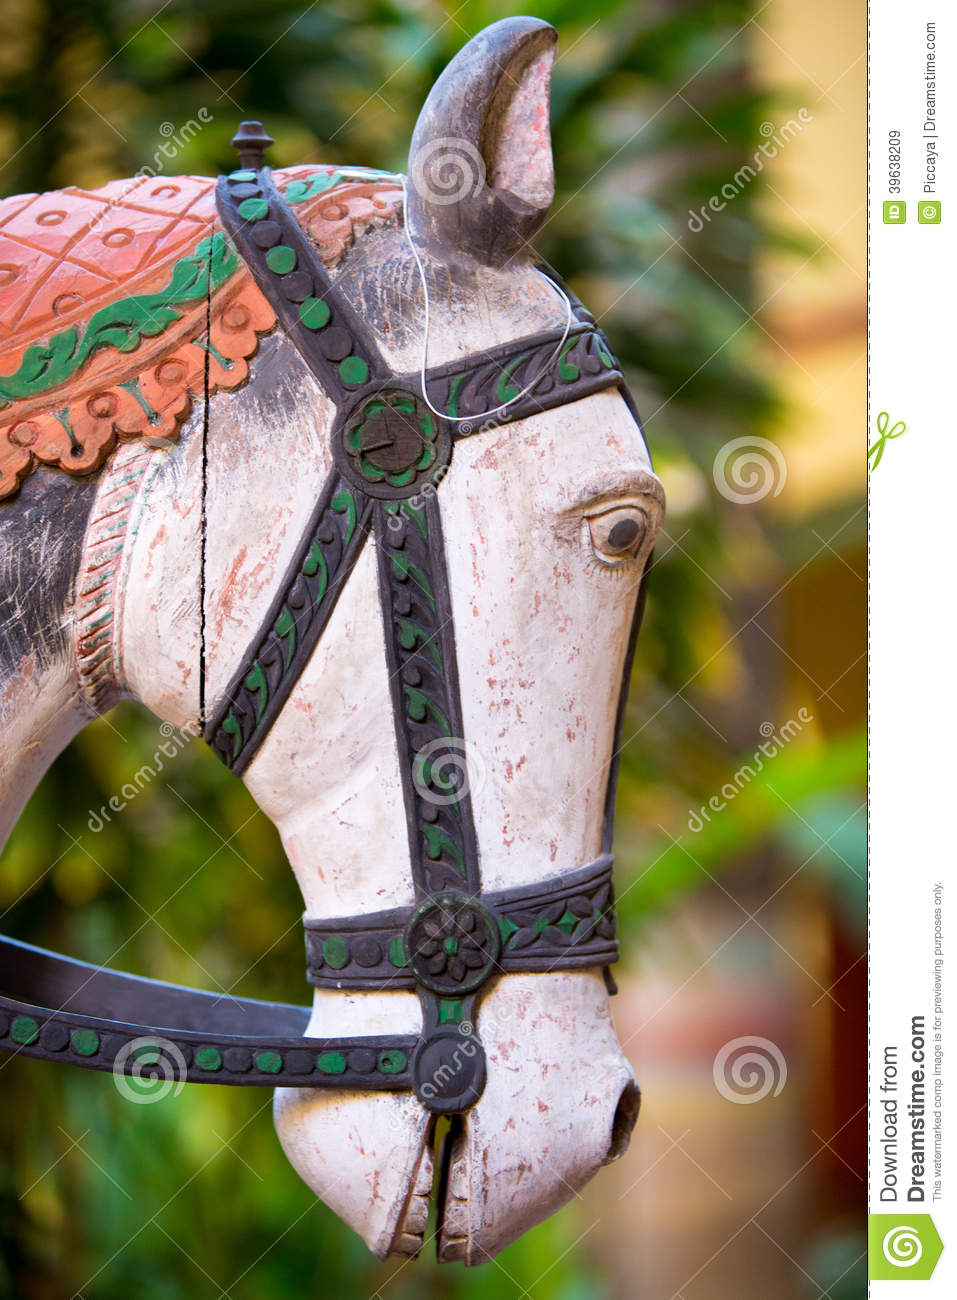 1 591 Wood Horse Sculpture Photos Free Royalty Free Stock Photos From Dreamstime